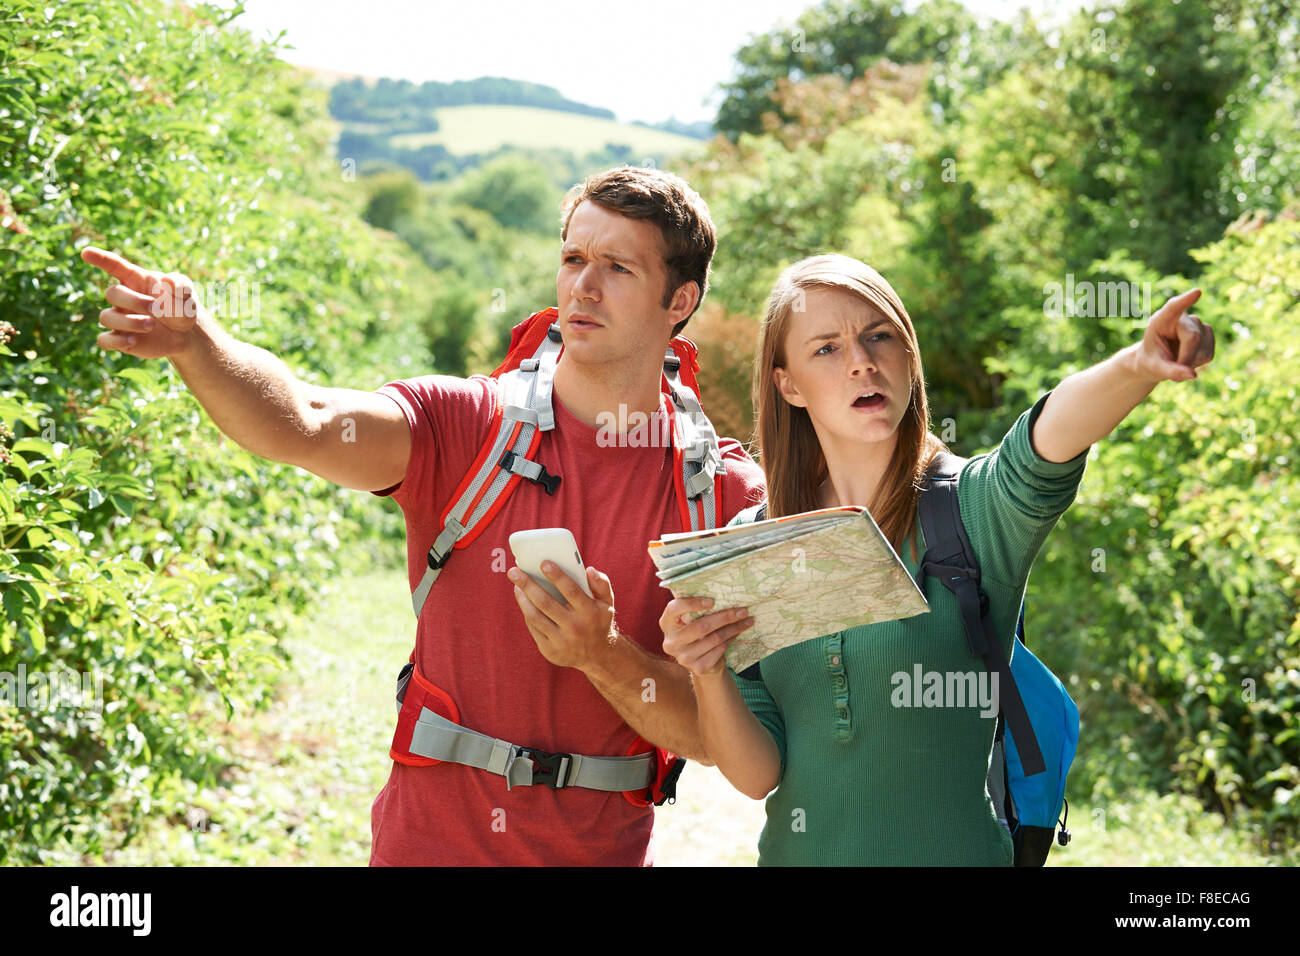 Couple Disagreeing About Best Way To Navigate On Hike - Stock Image